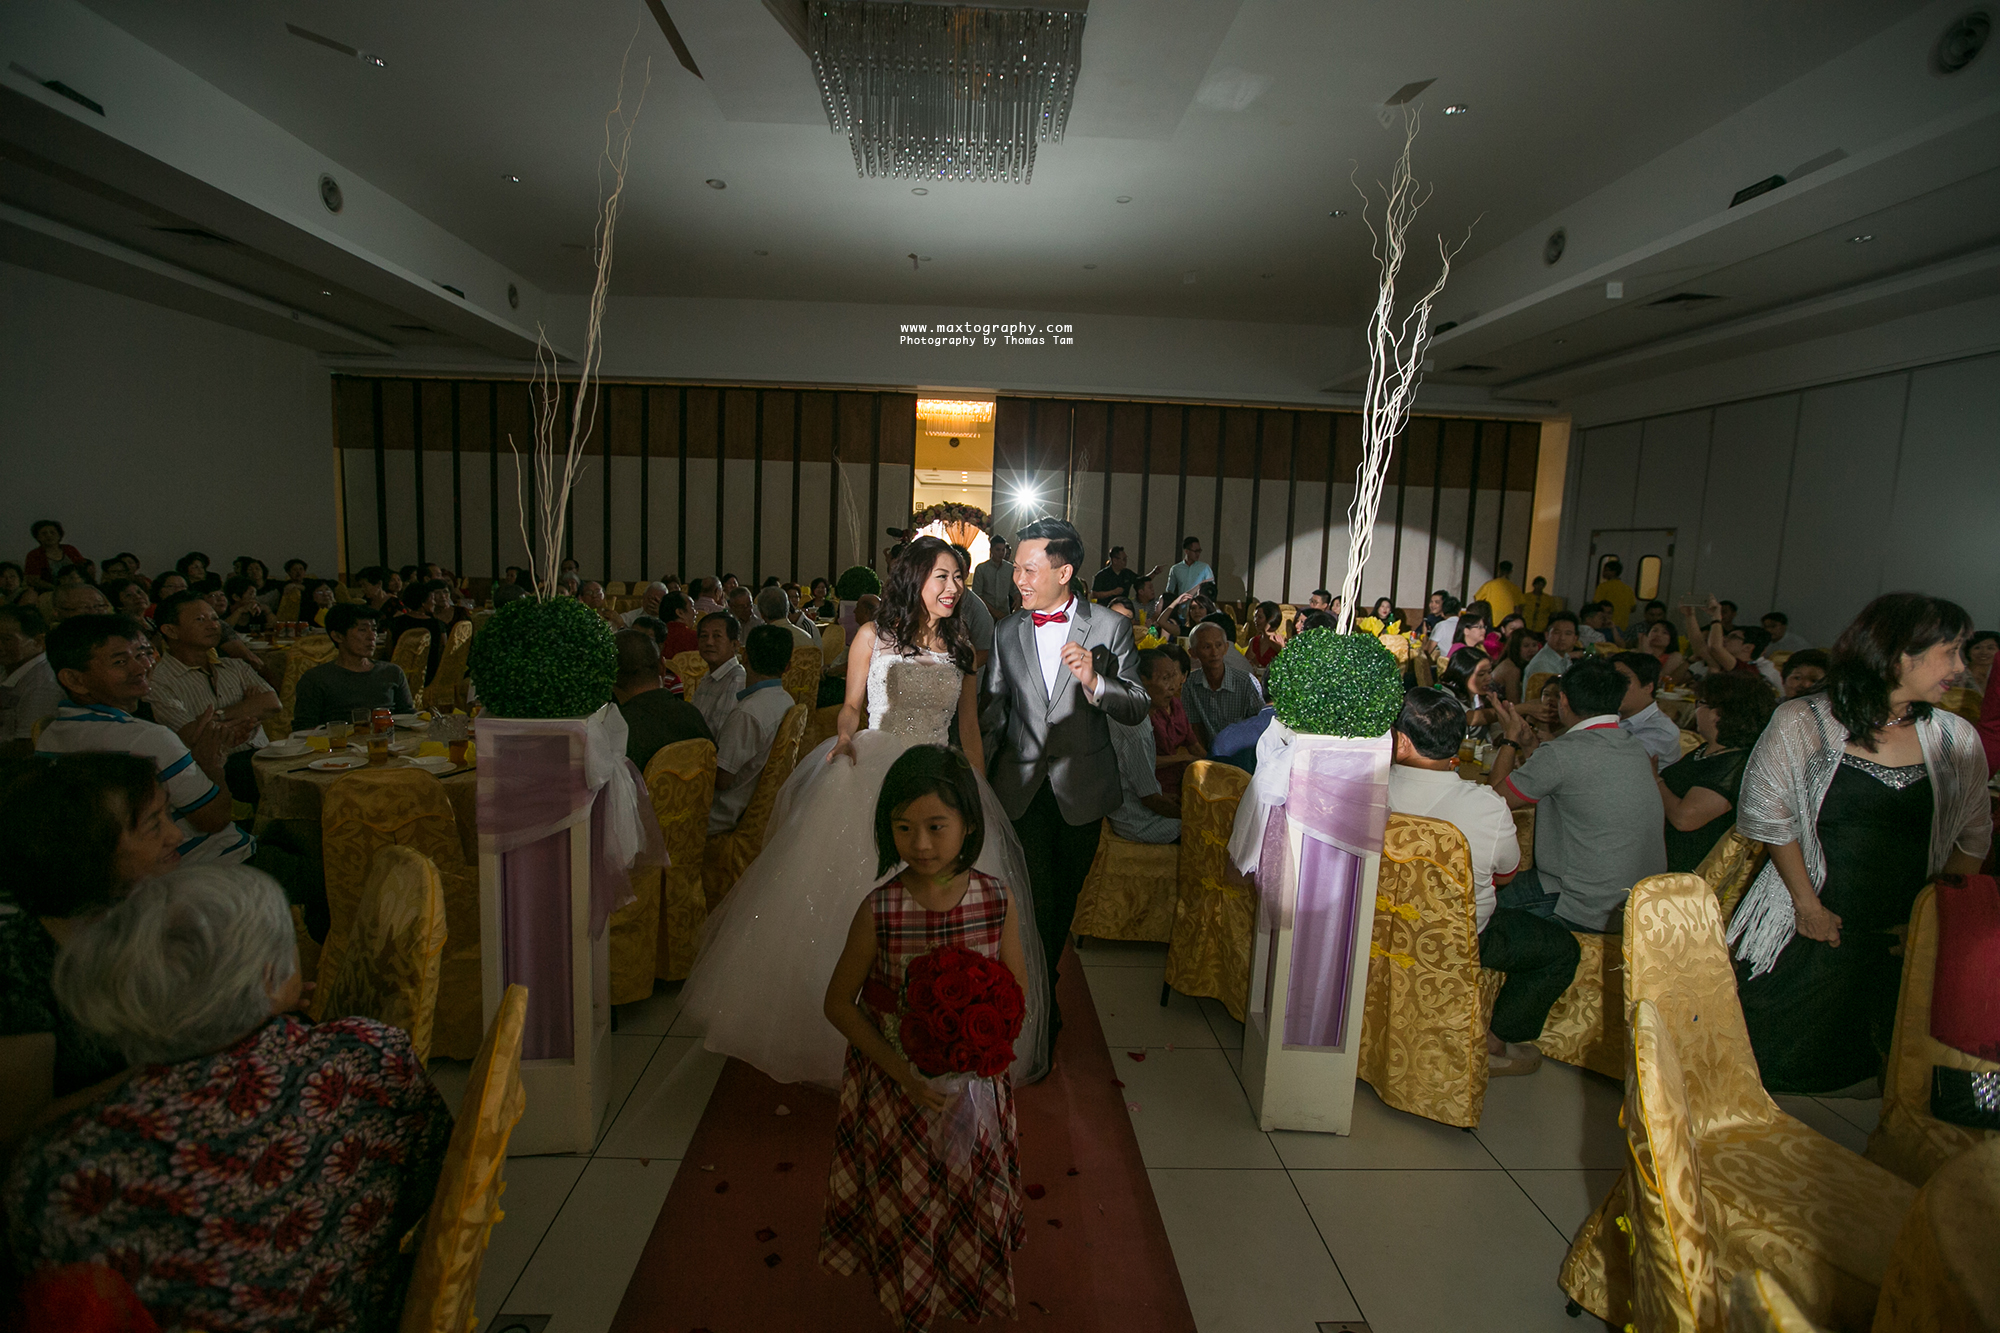 Bride and goom March-in ballroom